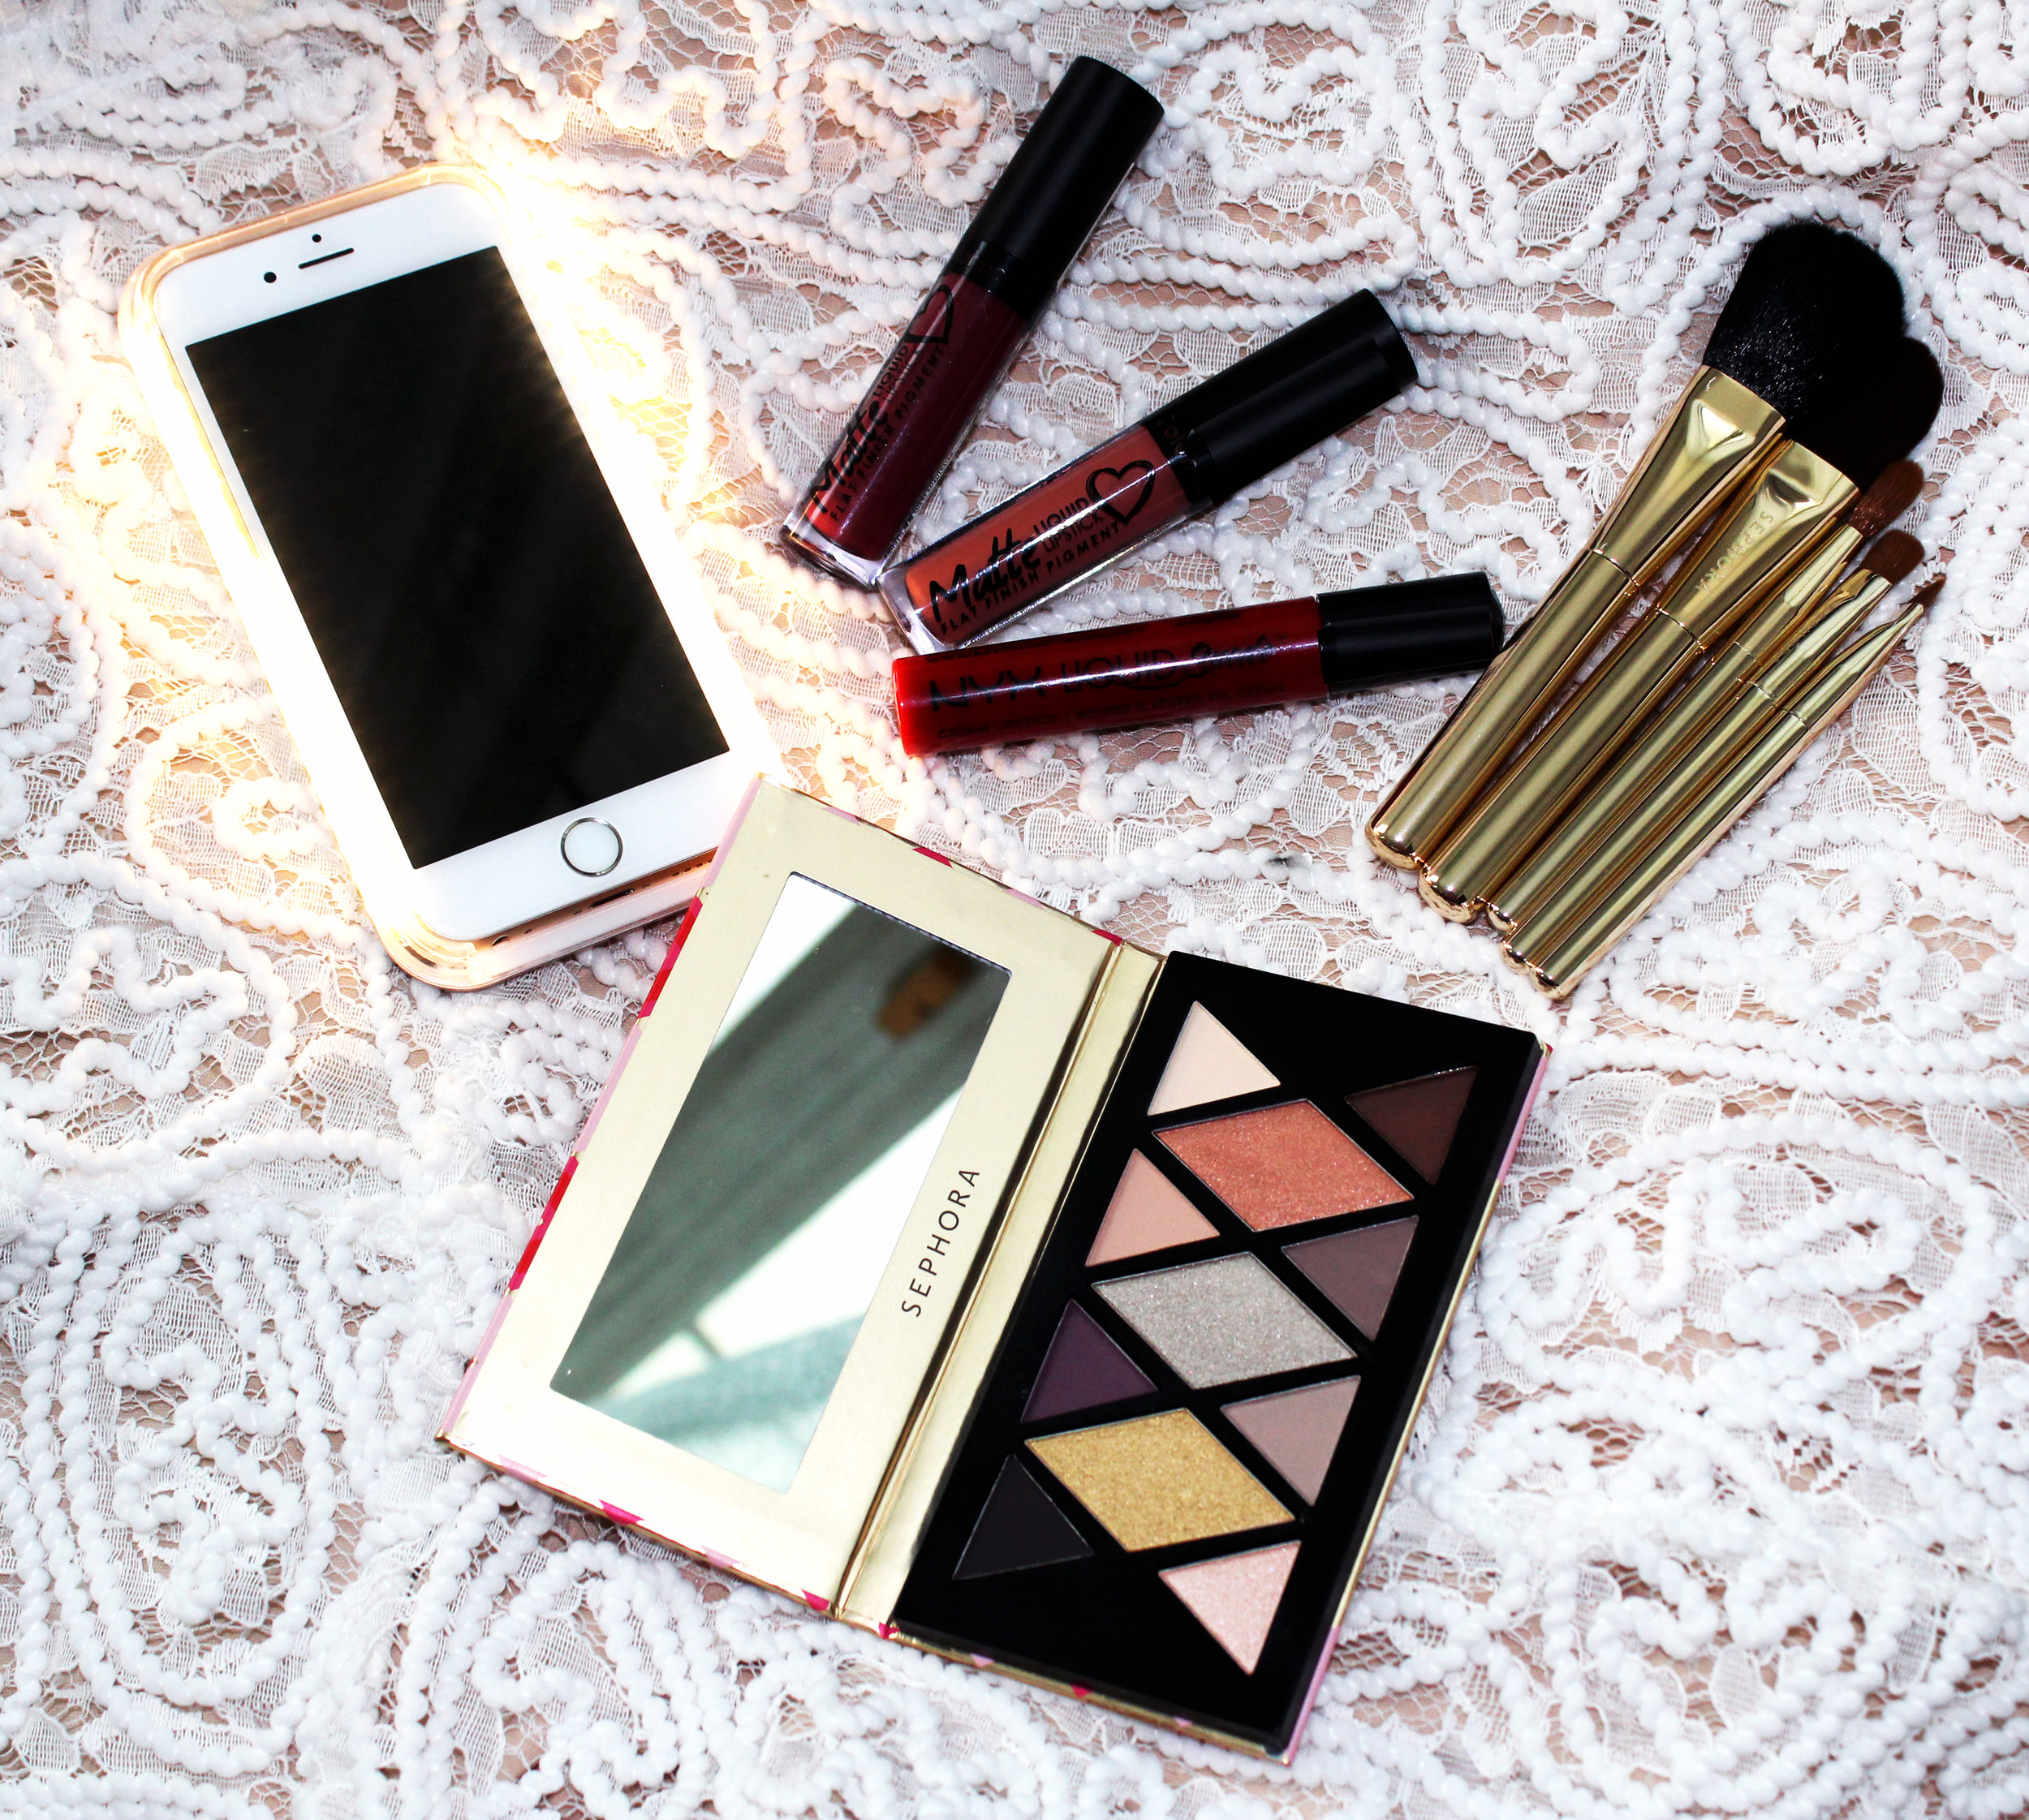 L  umee iPhone Cover / Colorina Matte MS Lipgloss in  Mocha  &  Wine  /  Nyx Liquid Suede Lipstick in Kitten Heels  /  Sephora Collection Sparkle & Shine Skinny Brush Set  /  Sephora Collection Matte Metallic Eyeshadow Palette